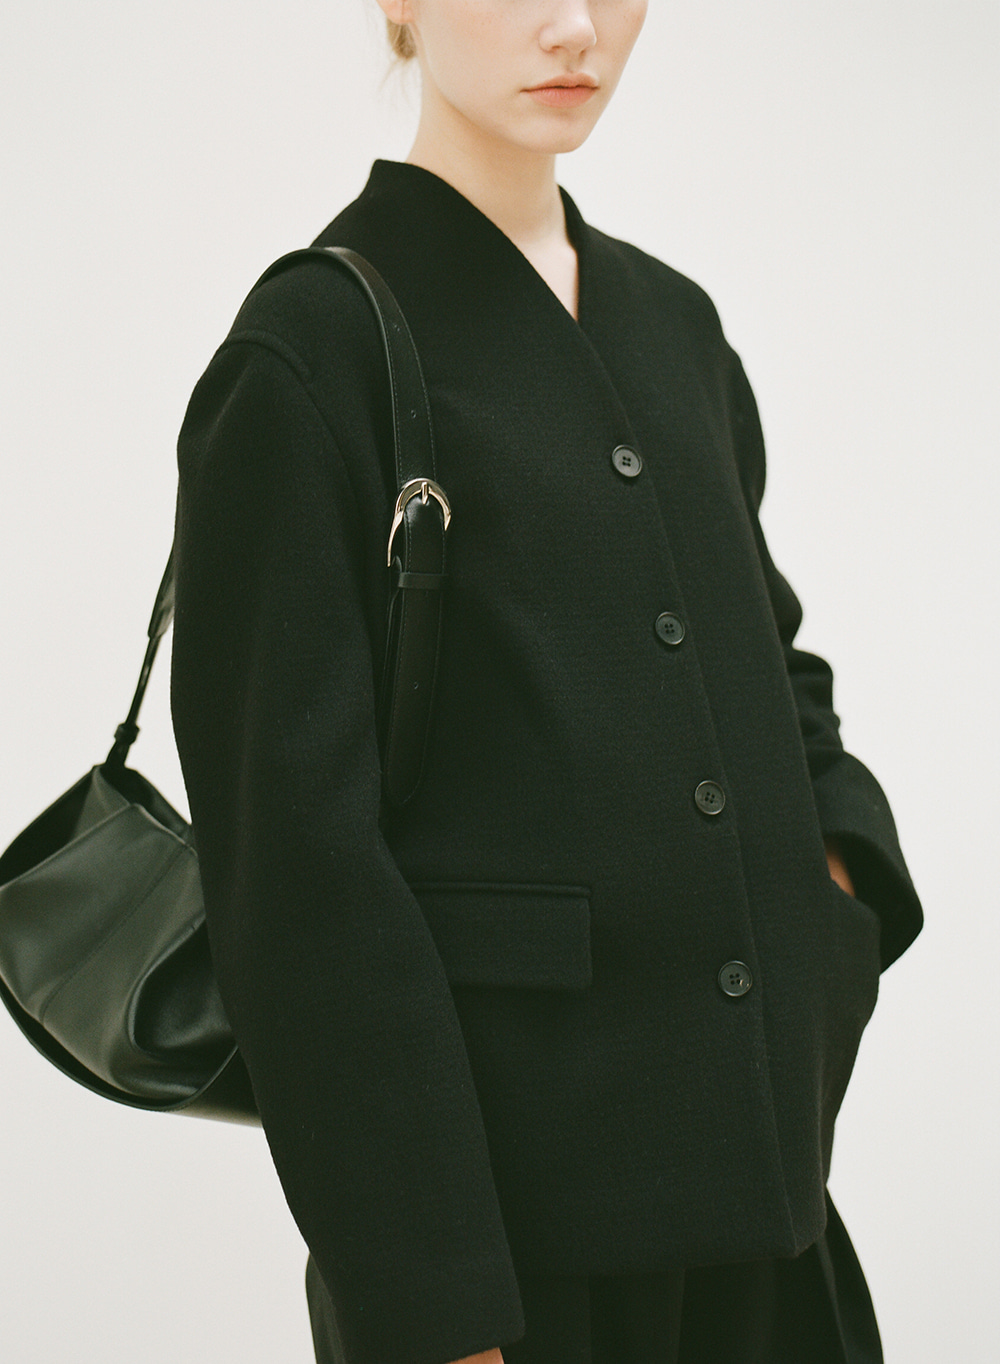 FW20 Stand Collar Jacket Black